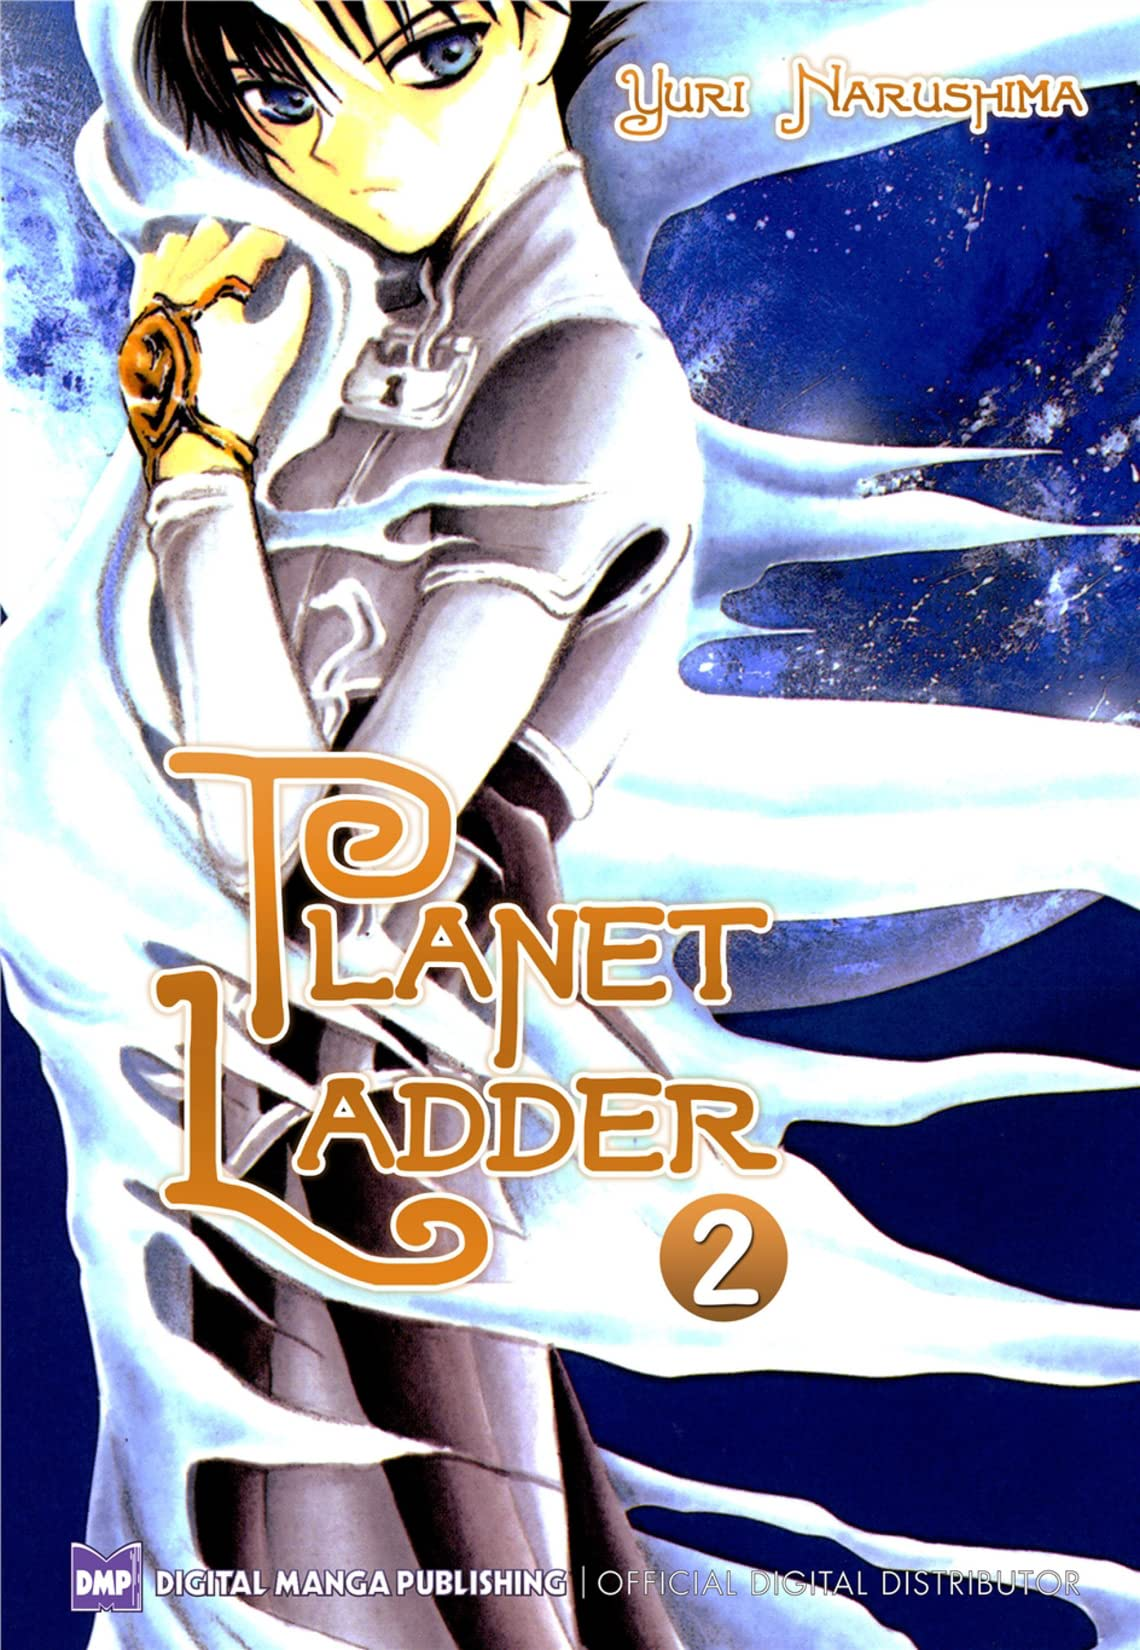 Planet Ladder Vol. 2